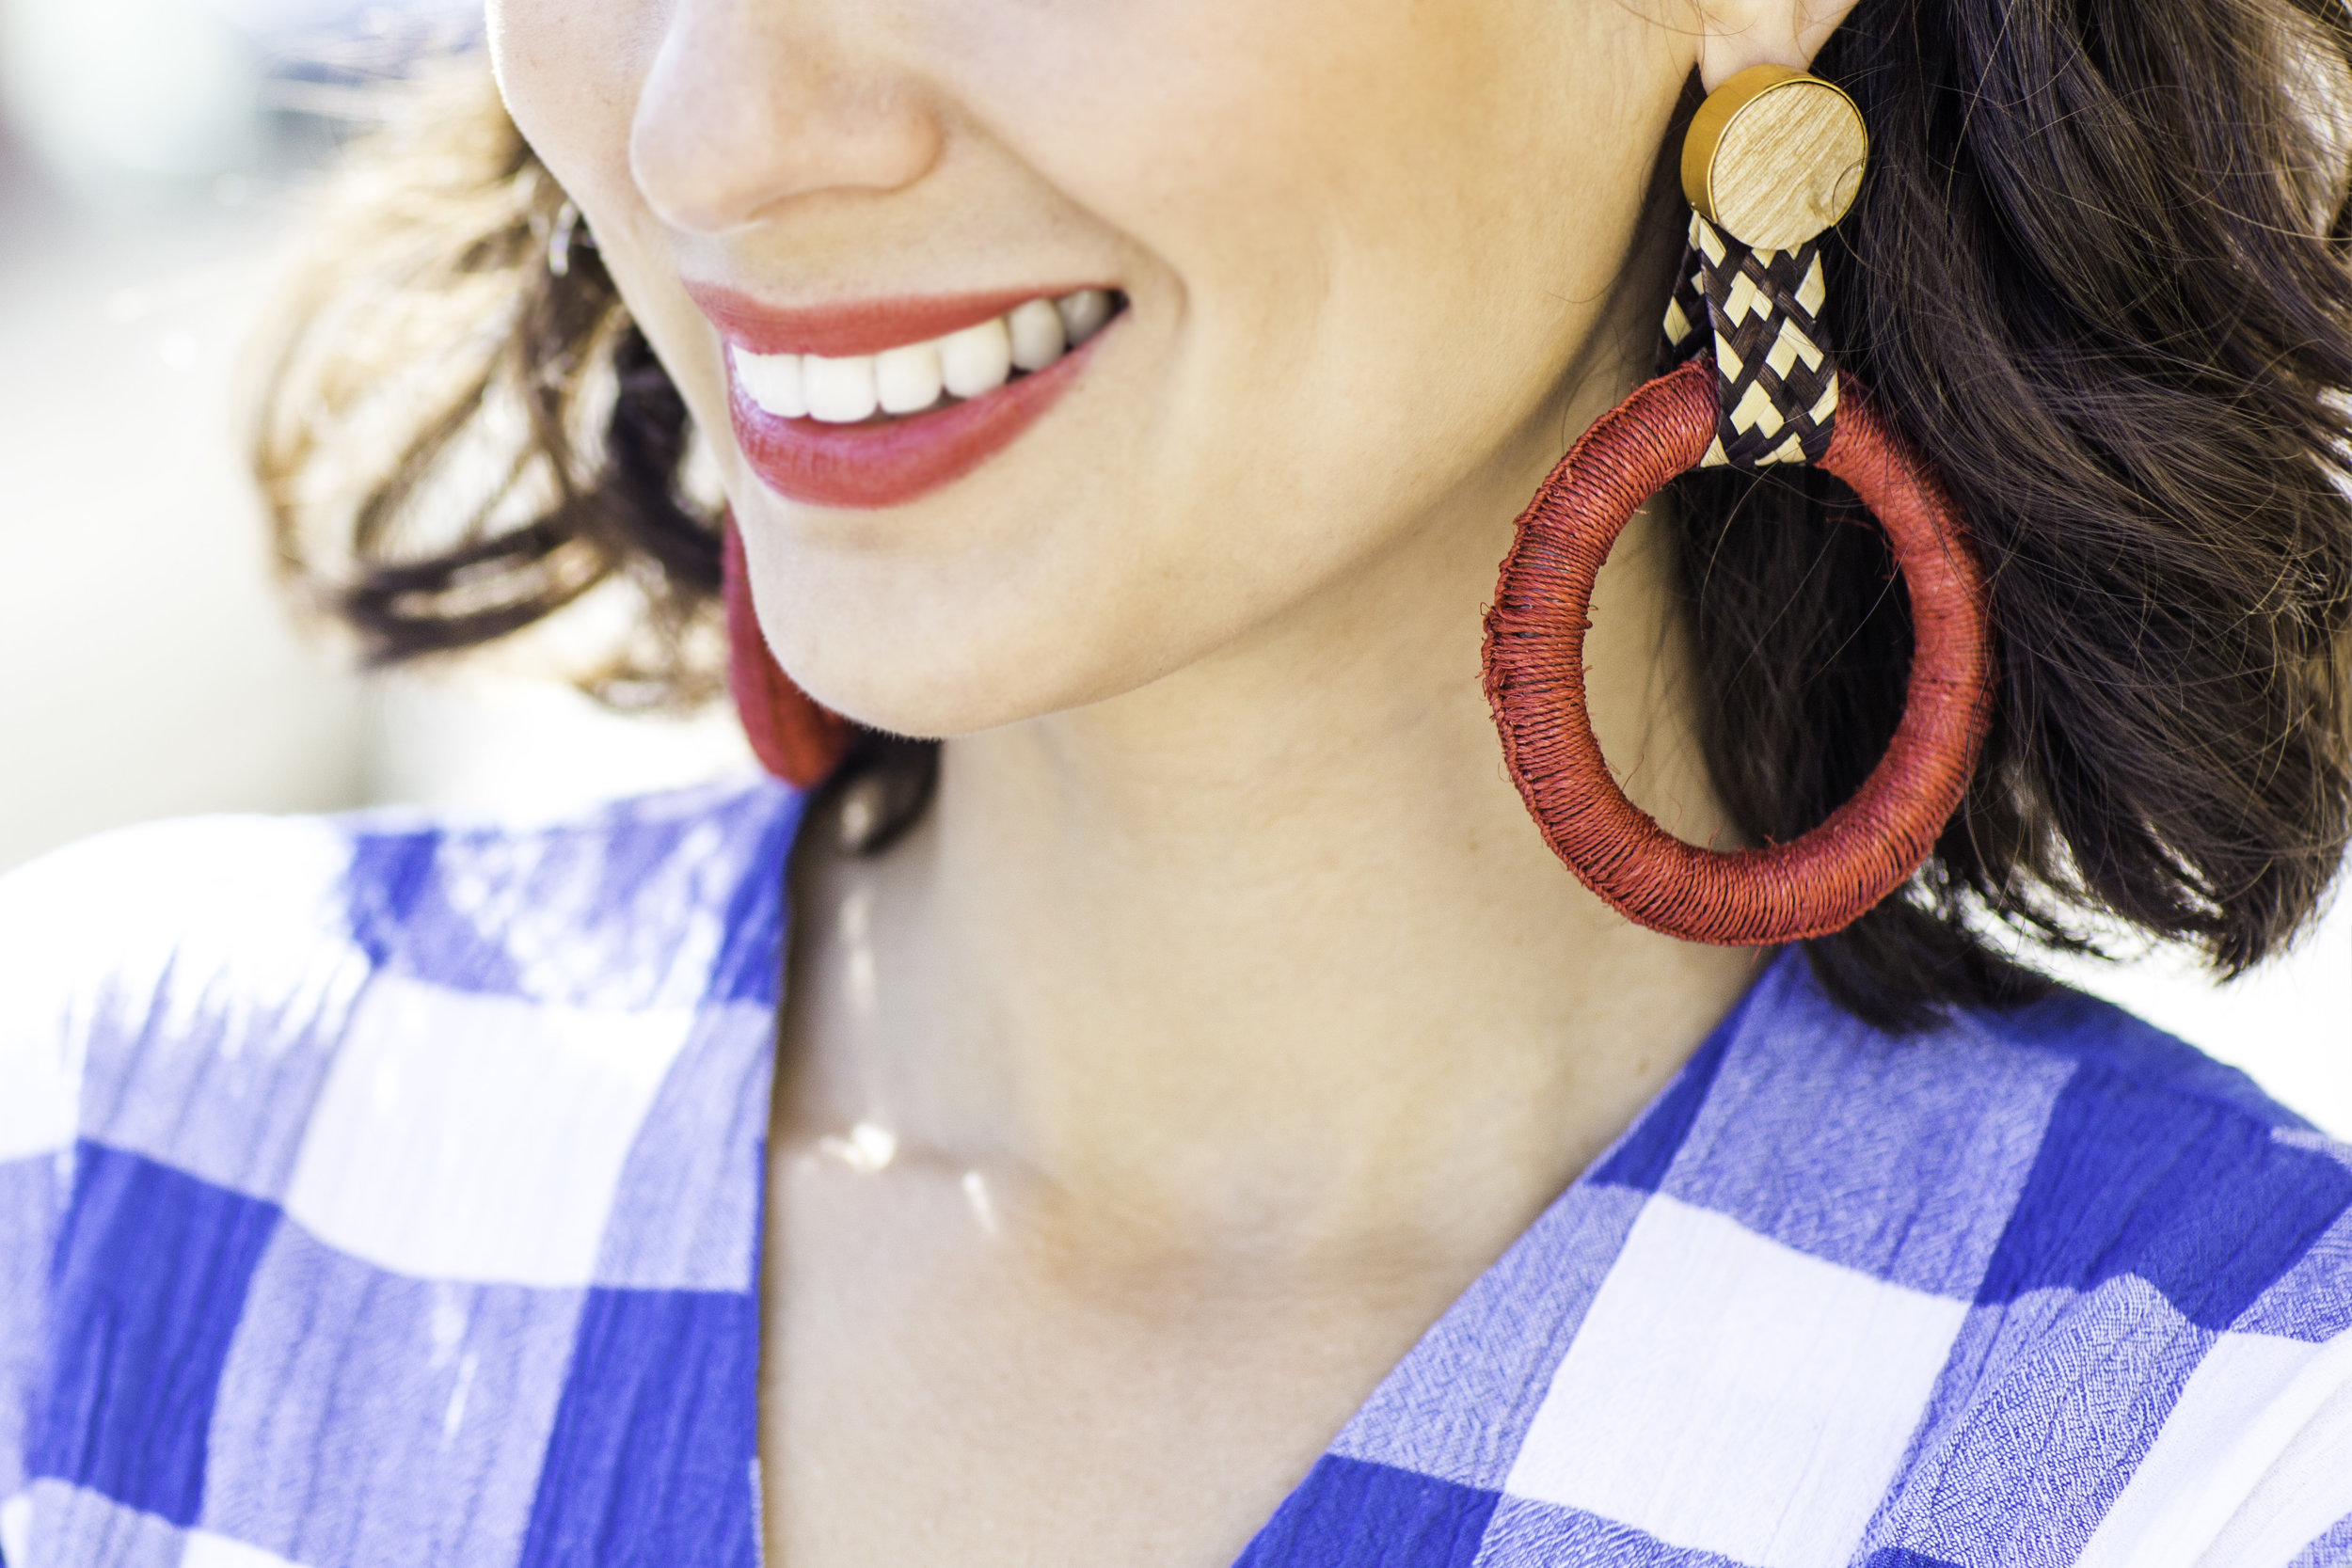 JasmineHemsley_FashionRevolution_GinghamDetail.jpg